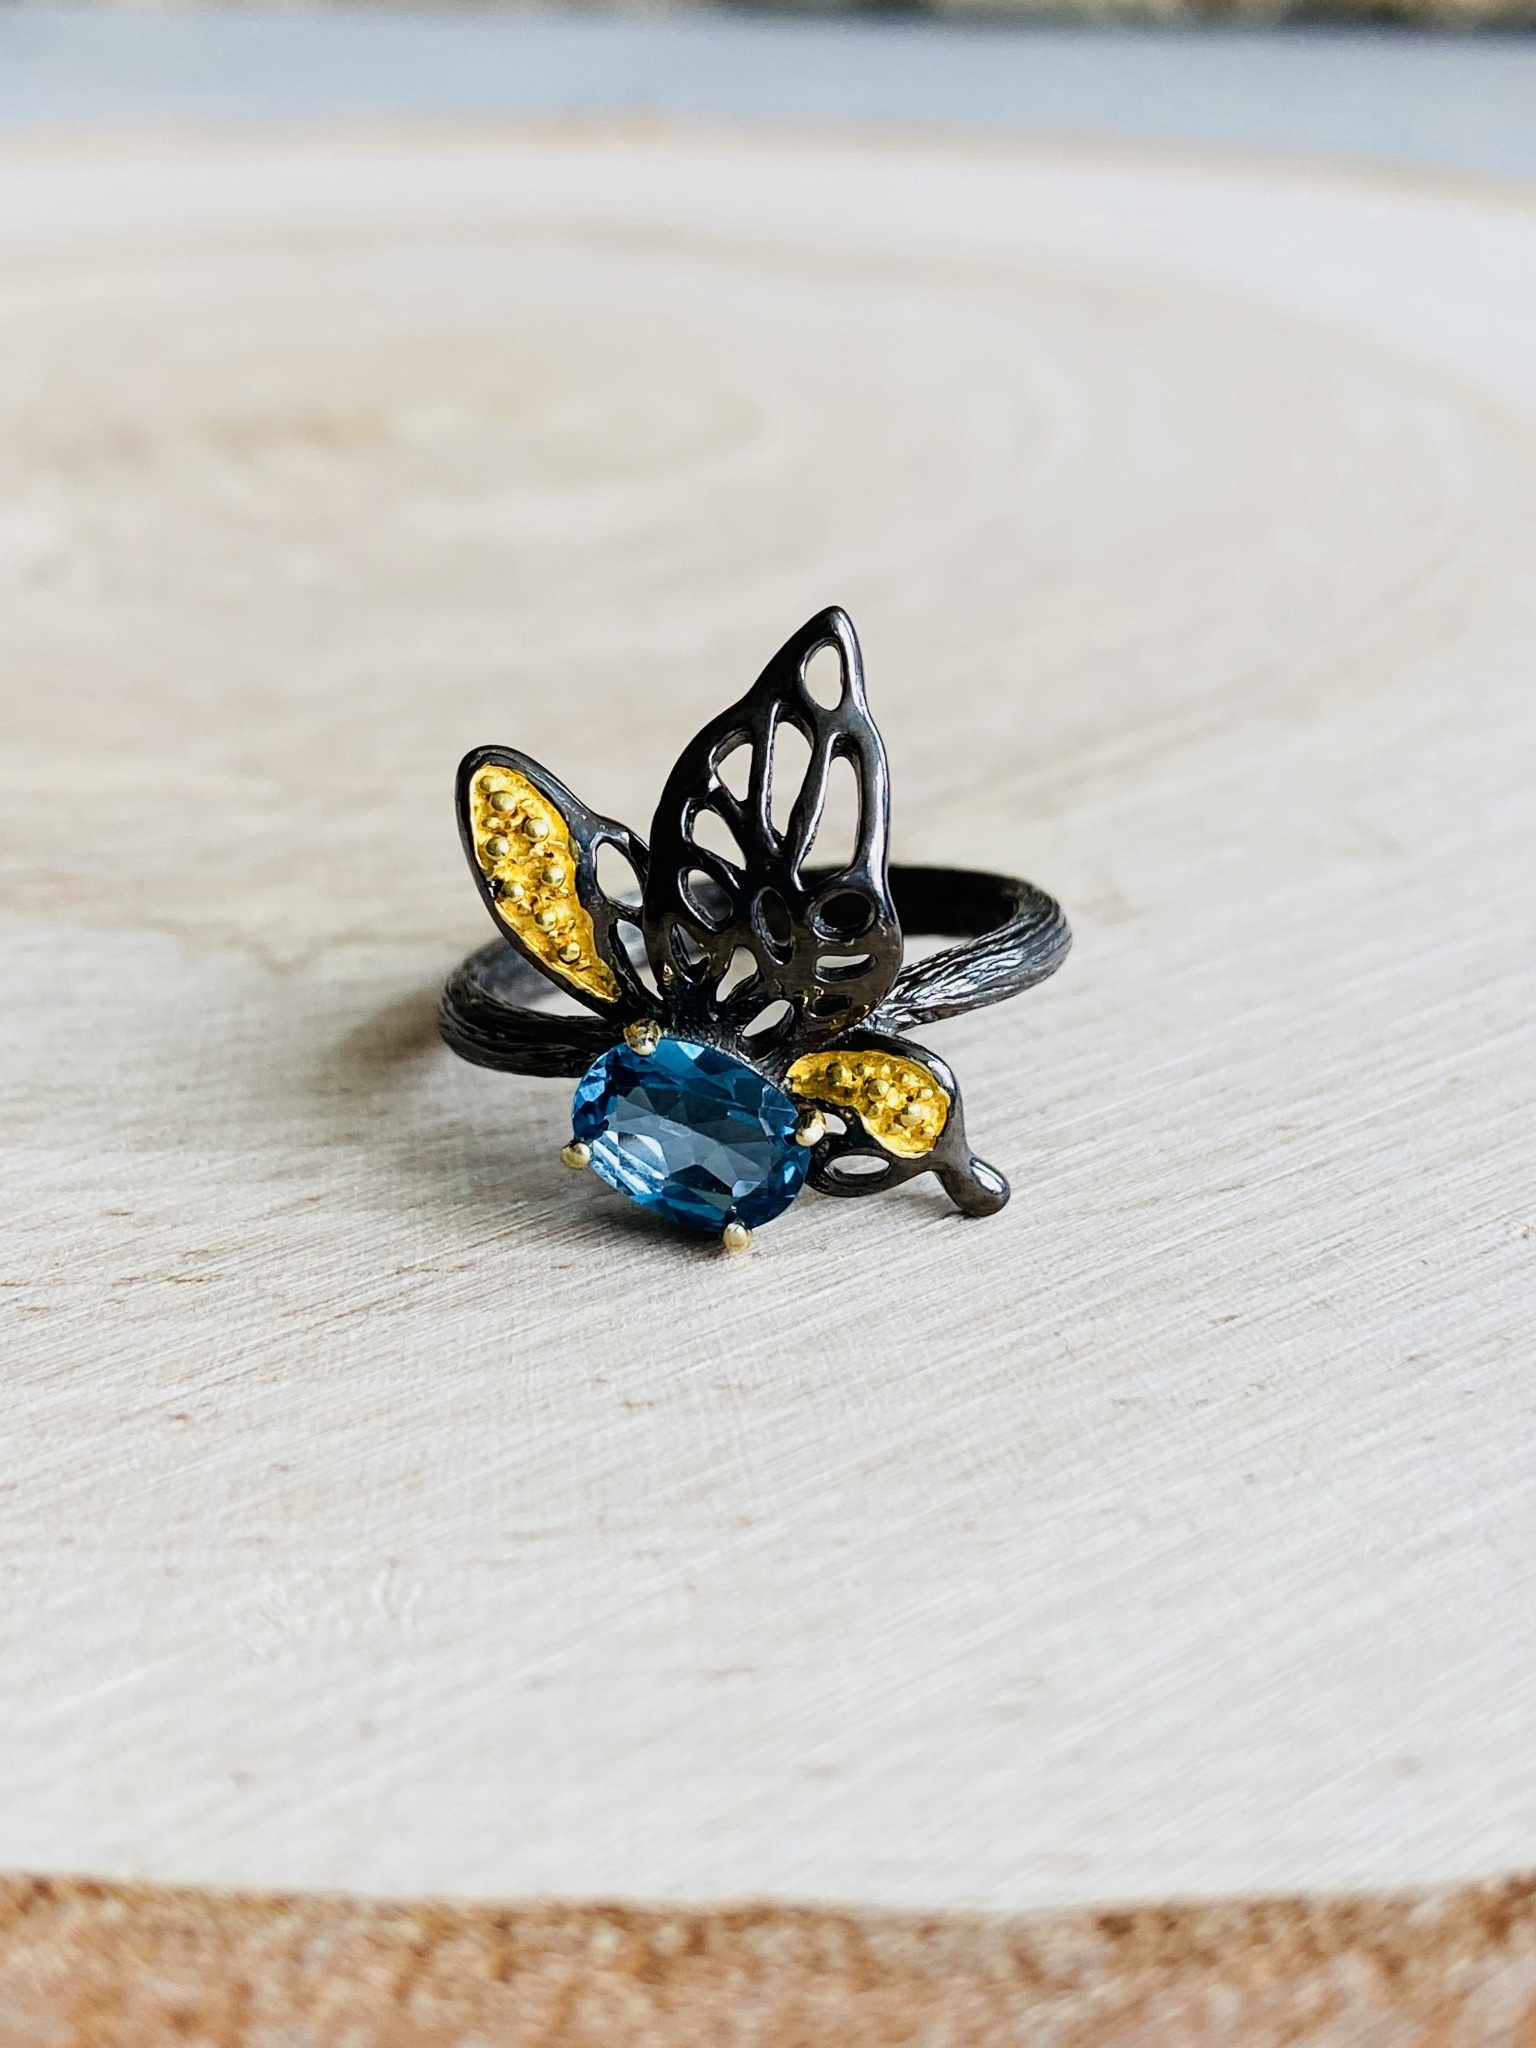 Blue Topaz Insect Ring - Size 7